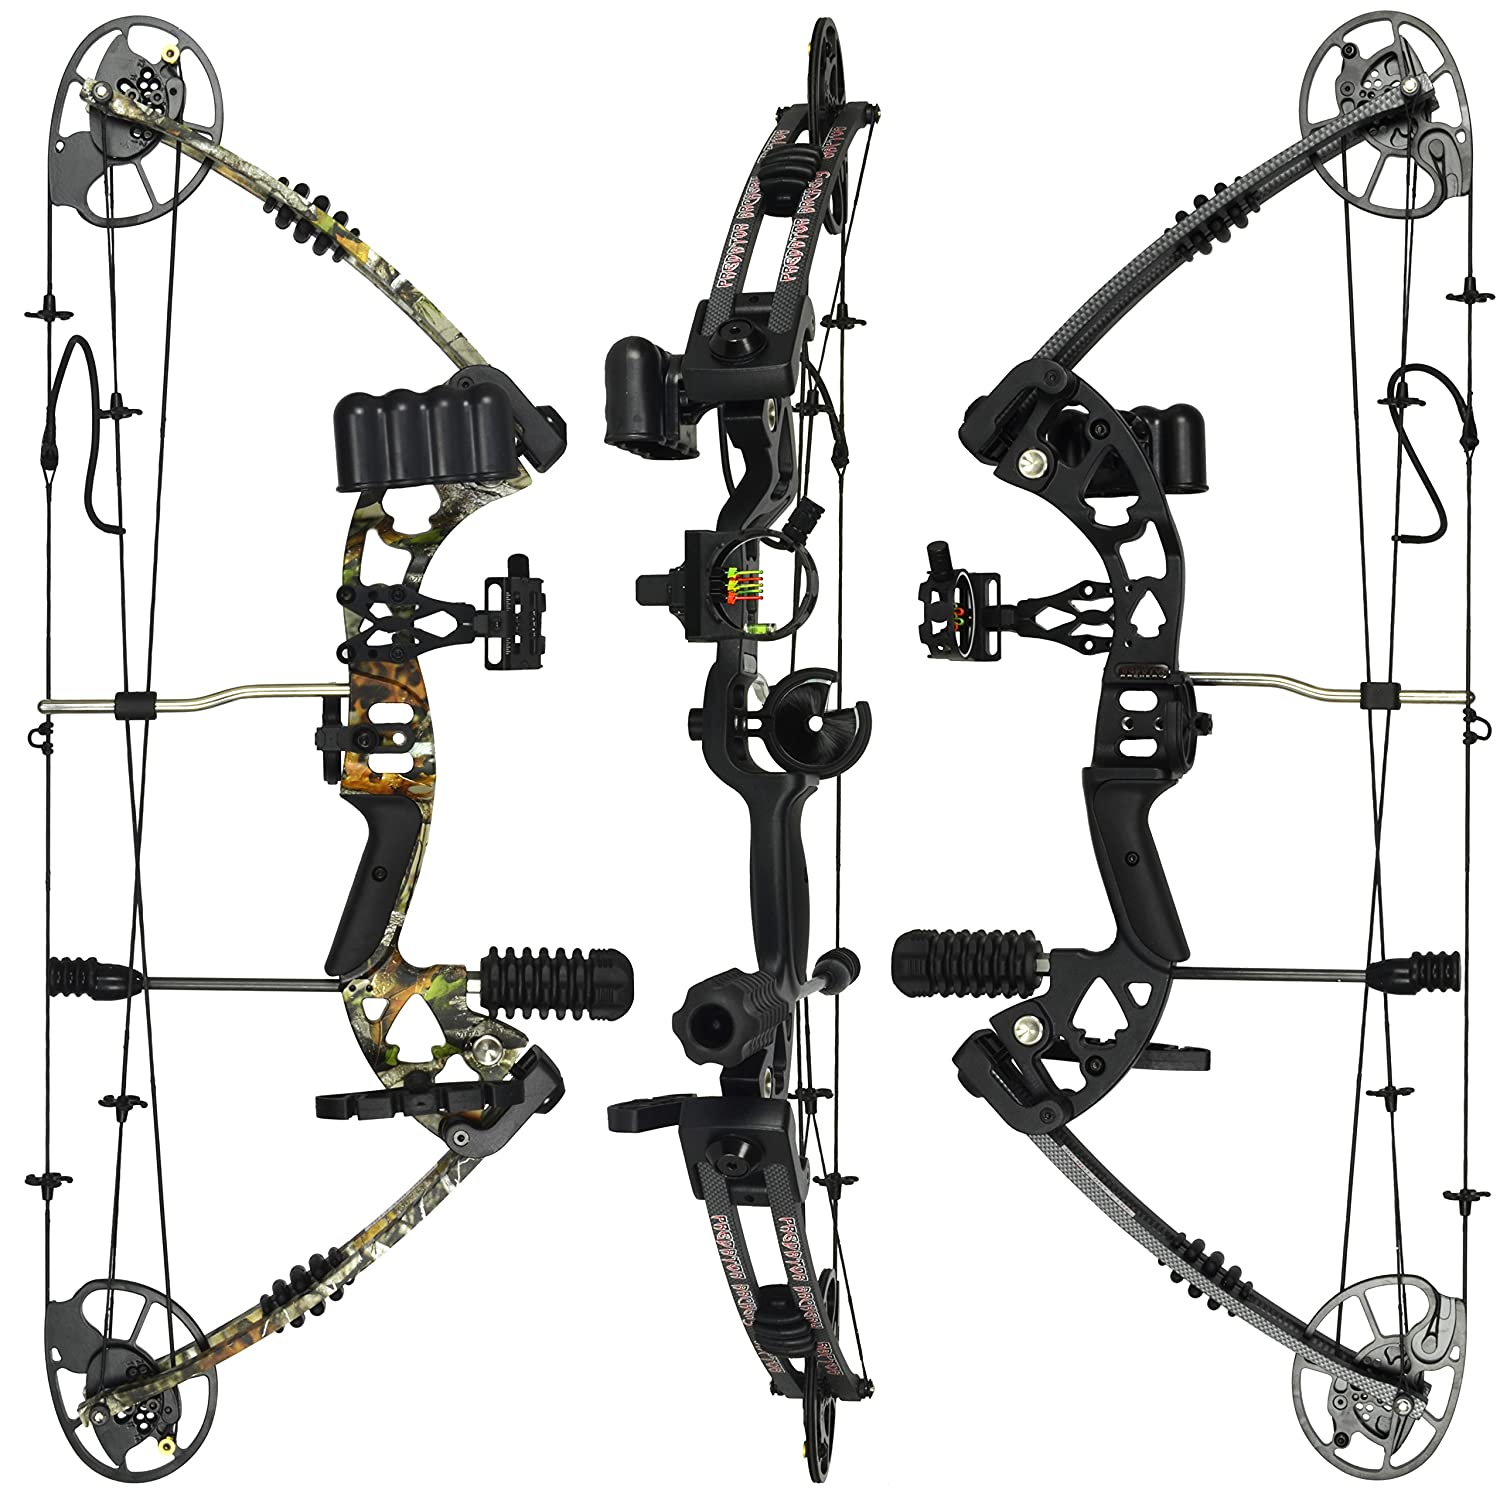 RAPTOR Compound Hunting Bow Kit LIMBS MADE IN USA Fully adjustable 24.5-31 Draw 30-70LB pull Up to 315 FPS WARRANTY 100 30 day GUARANTEE 5 Pin Lighted Sight, Biscuit Rest W STRING STOP